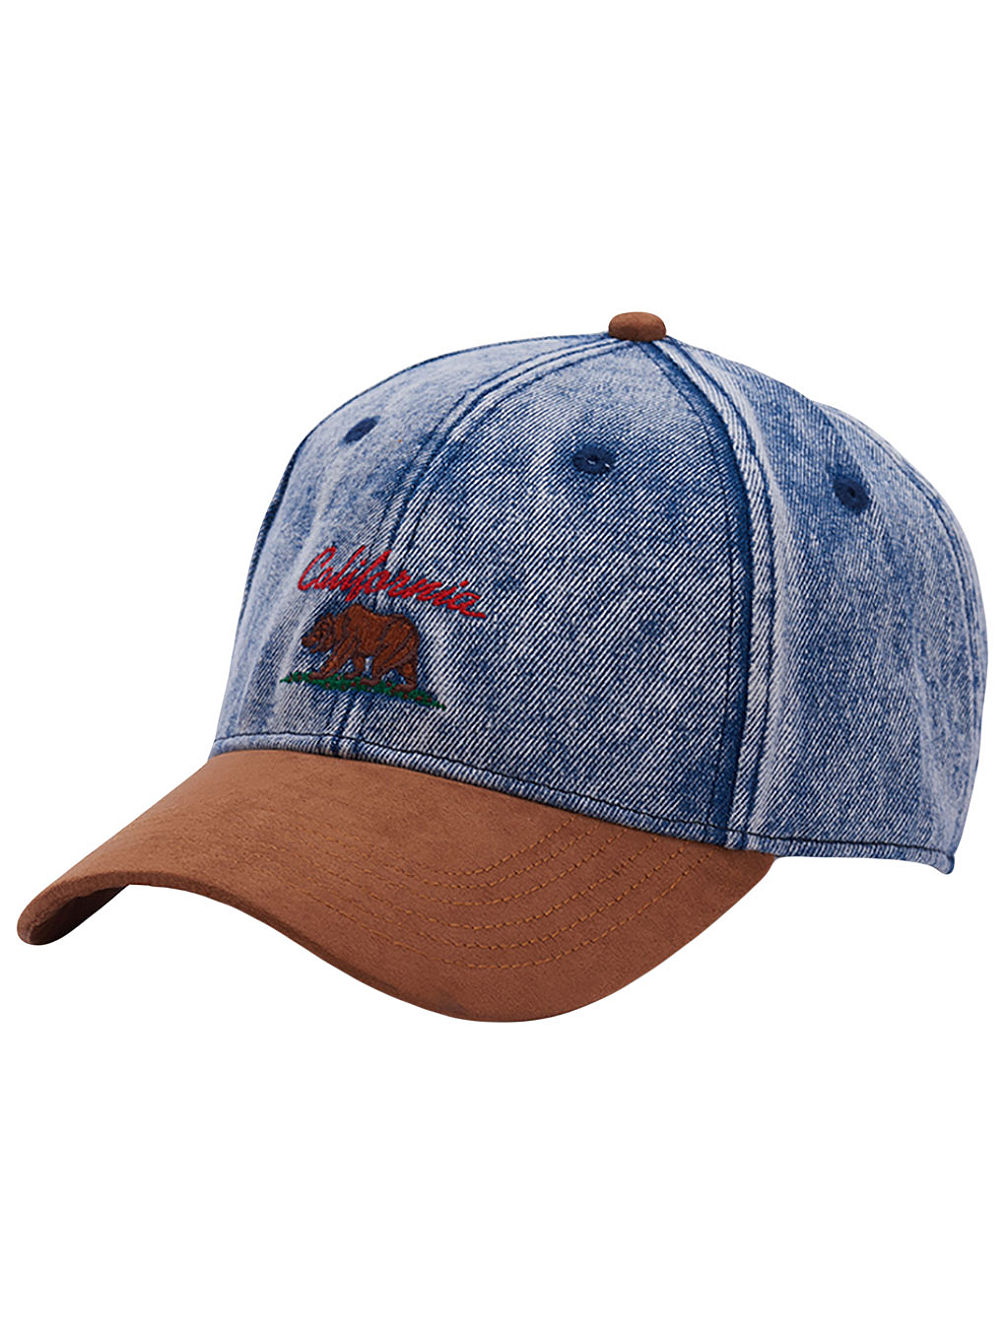 20303189e509a Buy Cayler   Sons Cali Vibe Curved Cap online at blue-tomato.com